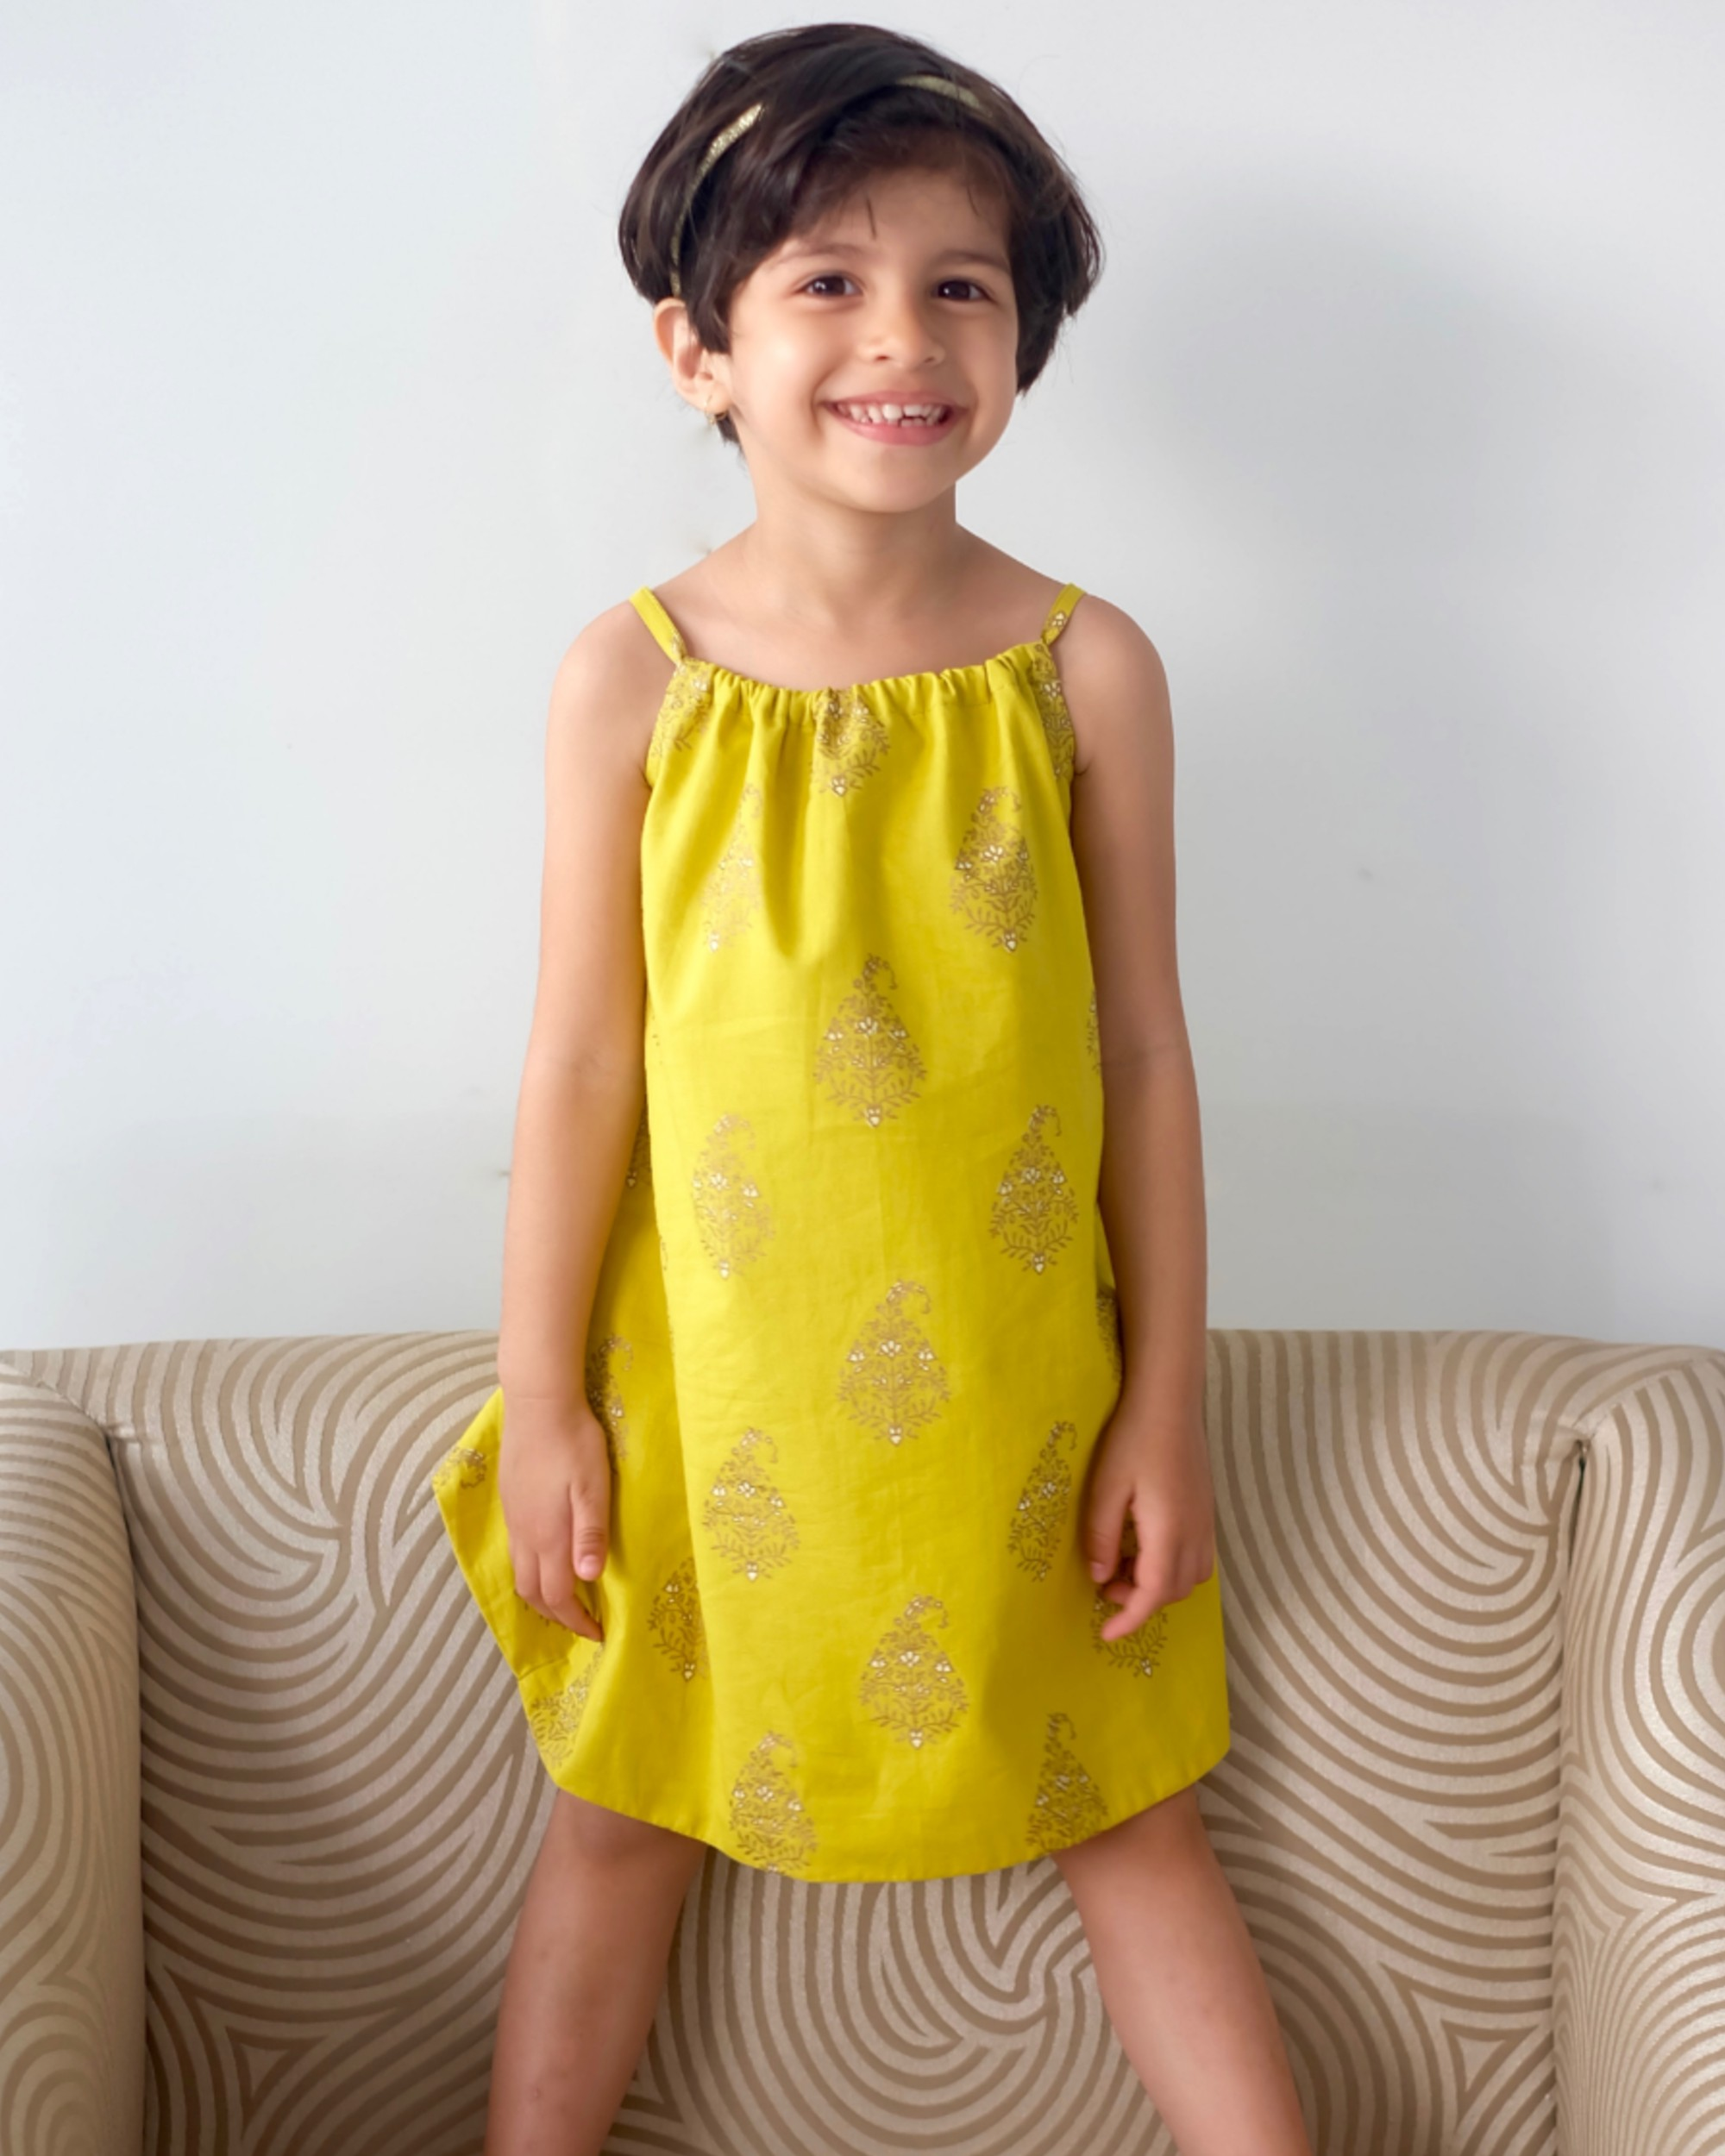 Lemon yellow floral printed knotty dress